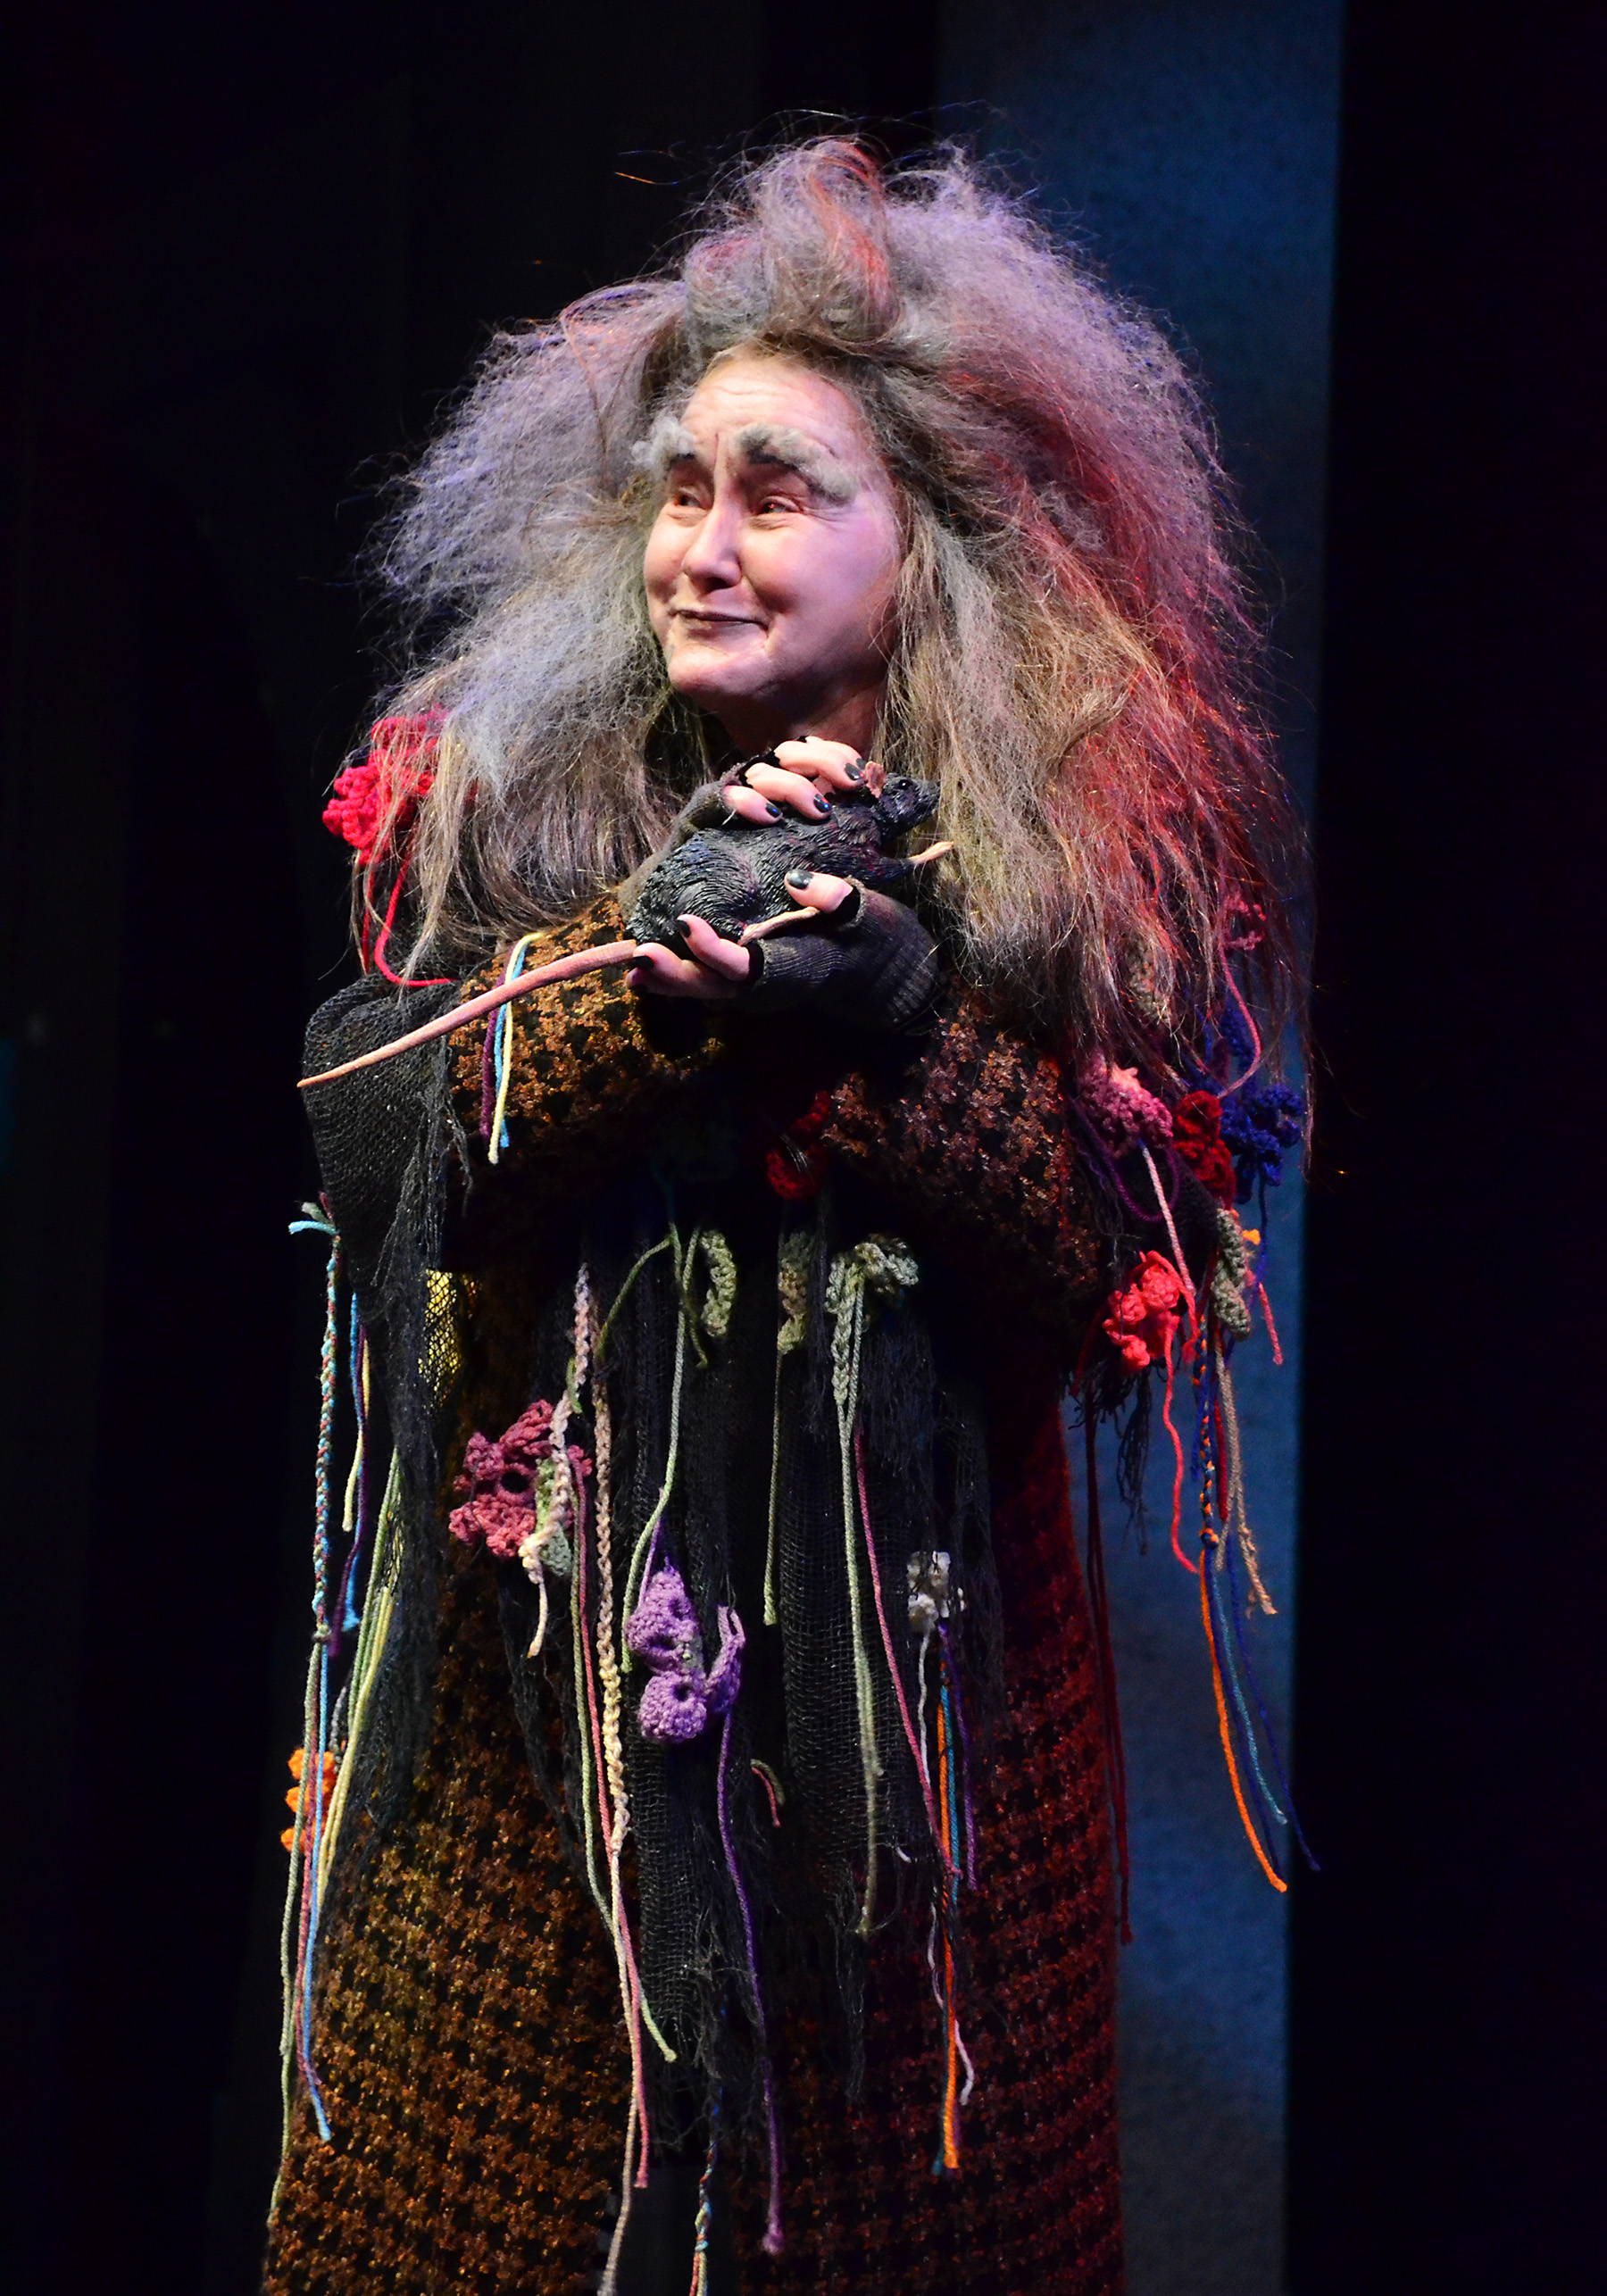 Former Wabash Resident Performs At Beef Boards Amanda Butterbaugh Is Grandma Addams In The Musical Comedy The Addams Family Butterbaugh Performs At The The Beef Boards Dinner Theatre In Indianapolis Photo Provided By Emma Rausch